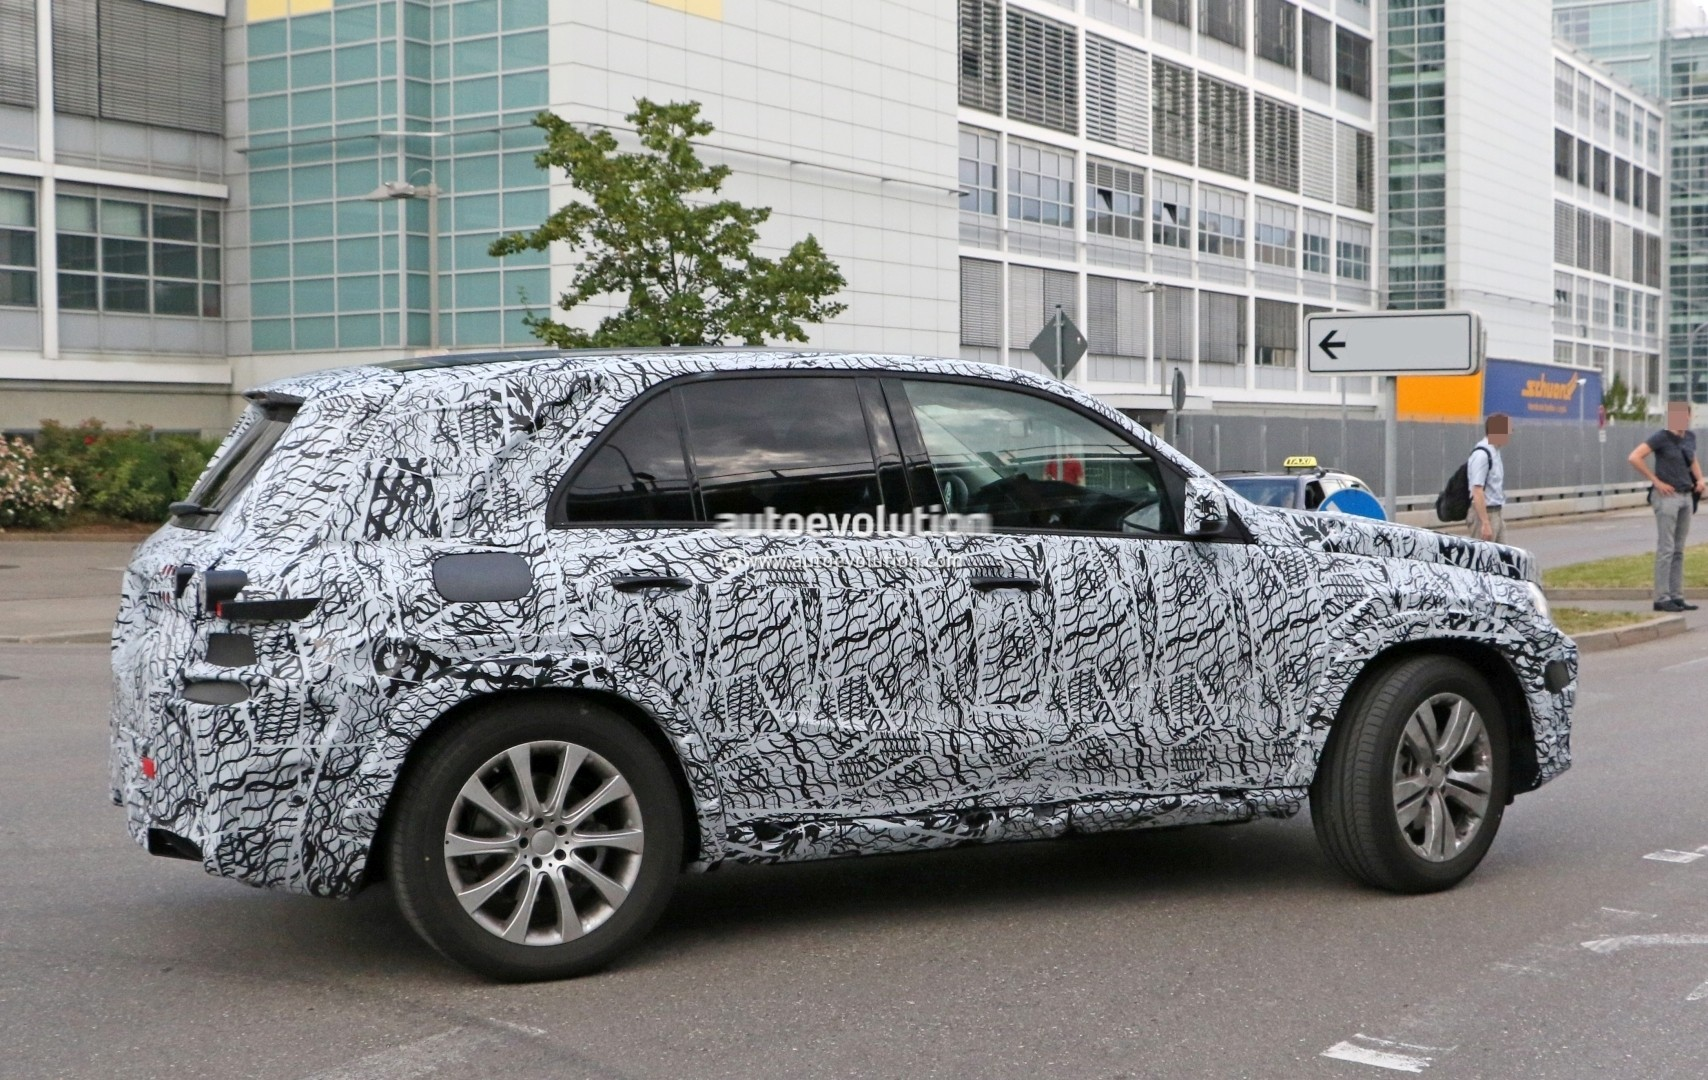 2019 mercedes benz gle spied up close will have a much stronger identity autoevolution. Black Bedroom Furniture Sets. Home Design Ideas